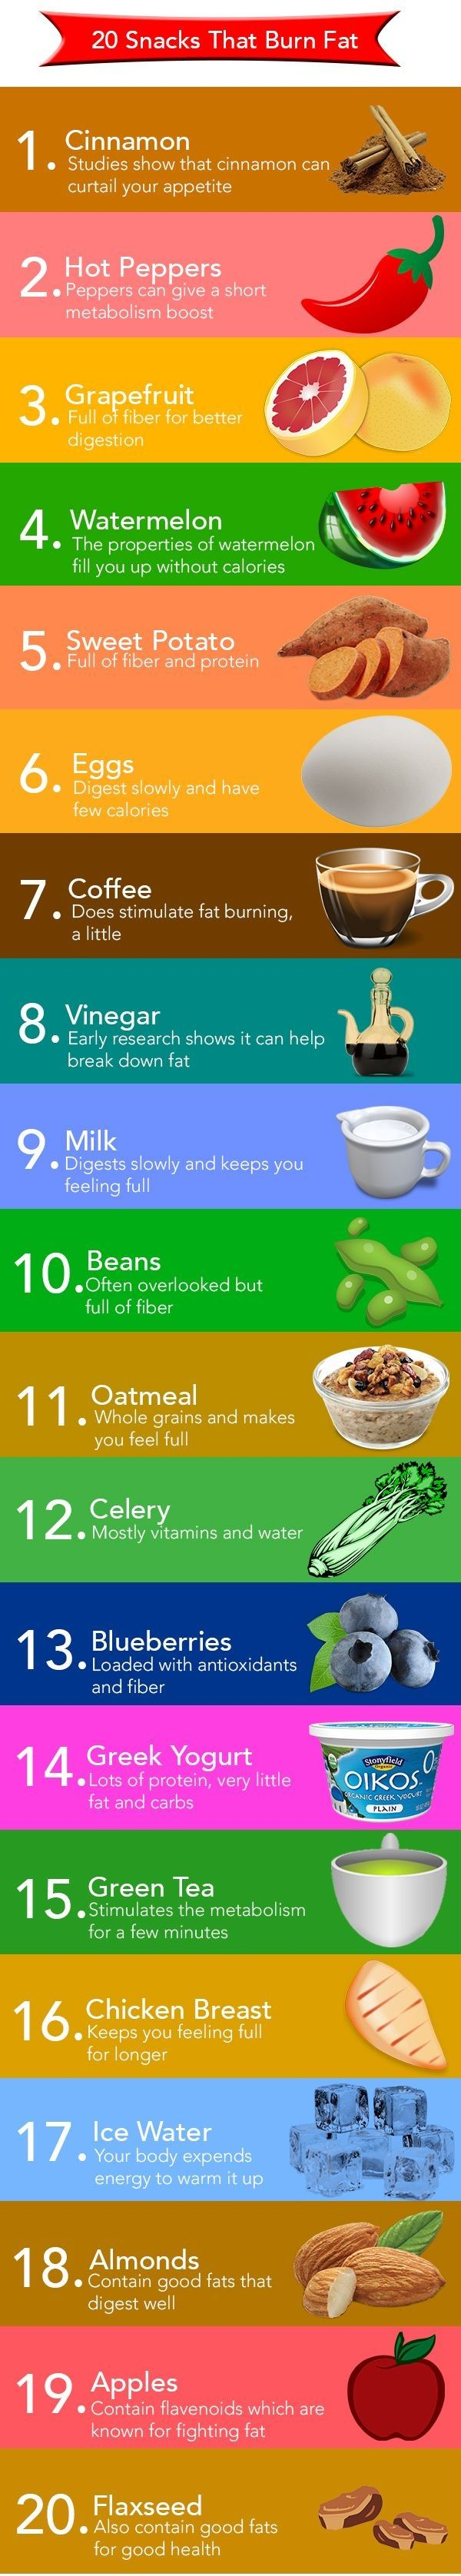 Weight Loss - Simple Foods that Burn Fat